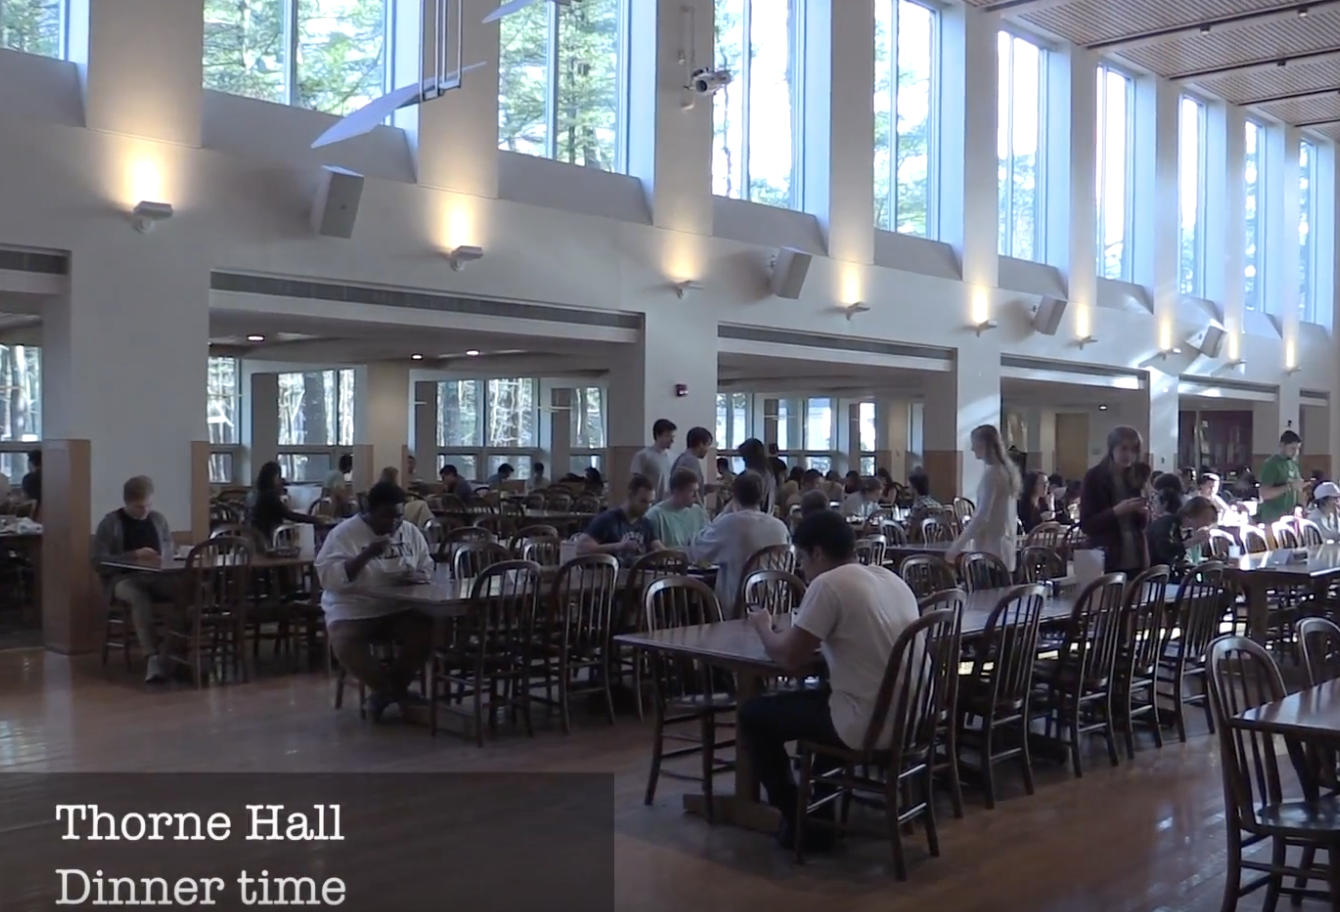 Thorne dining hall